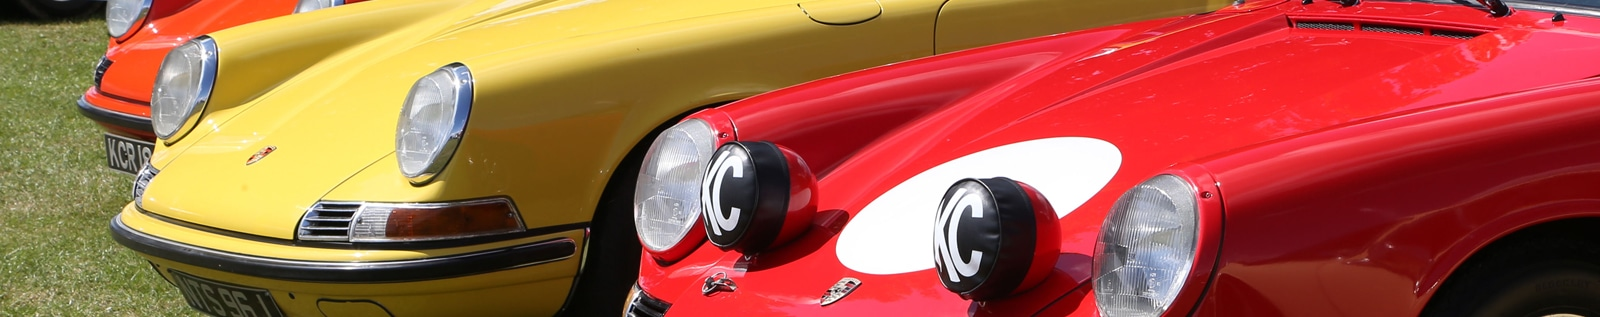 Specialist Classic and Sports Car Insurance | Reis